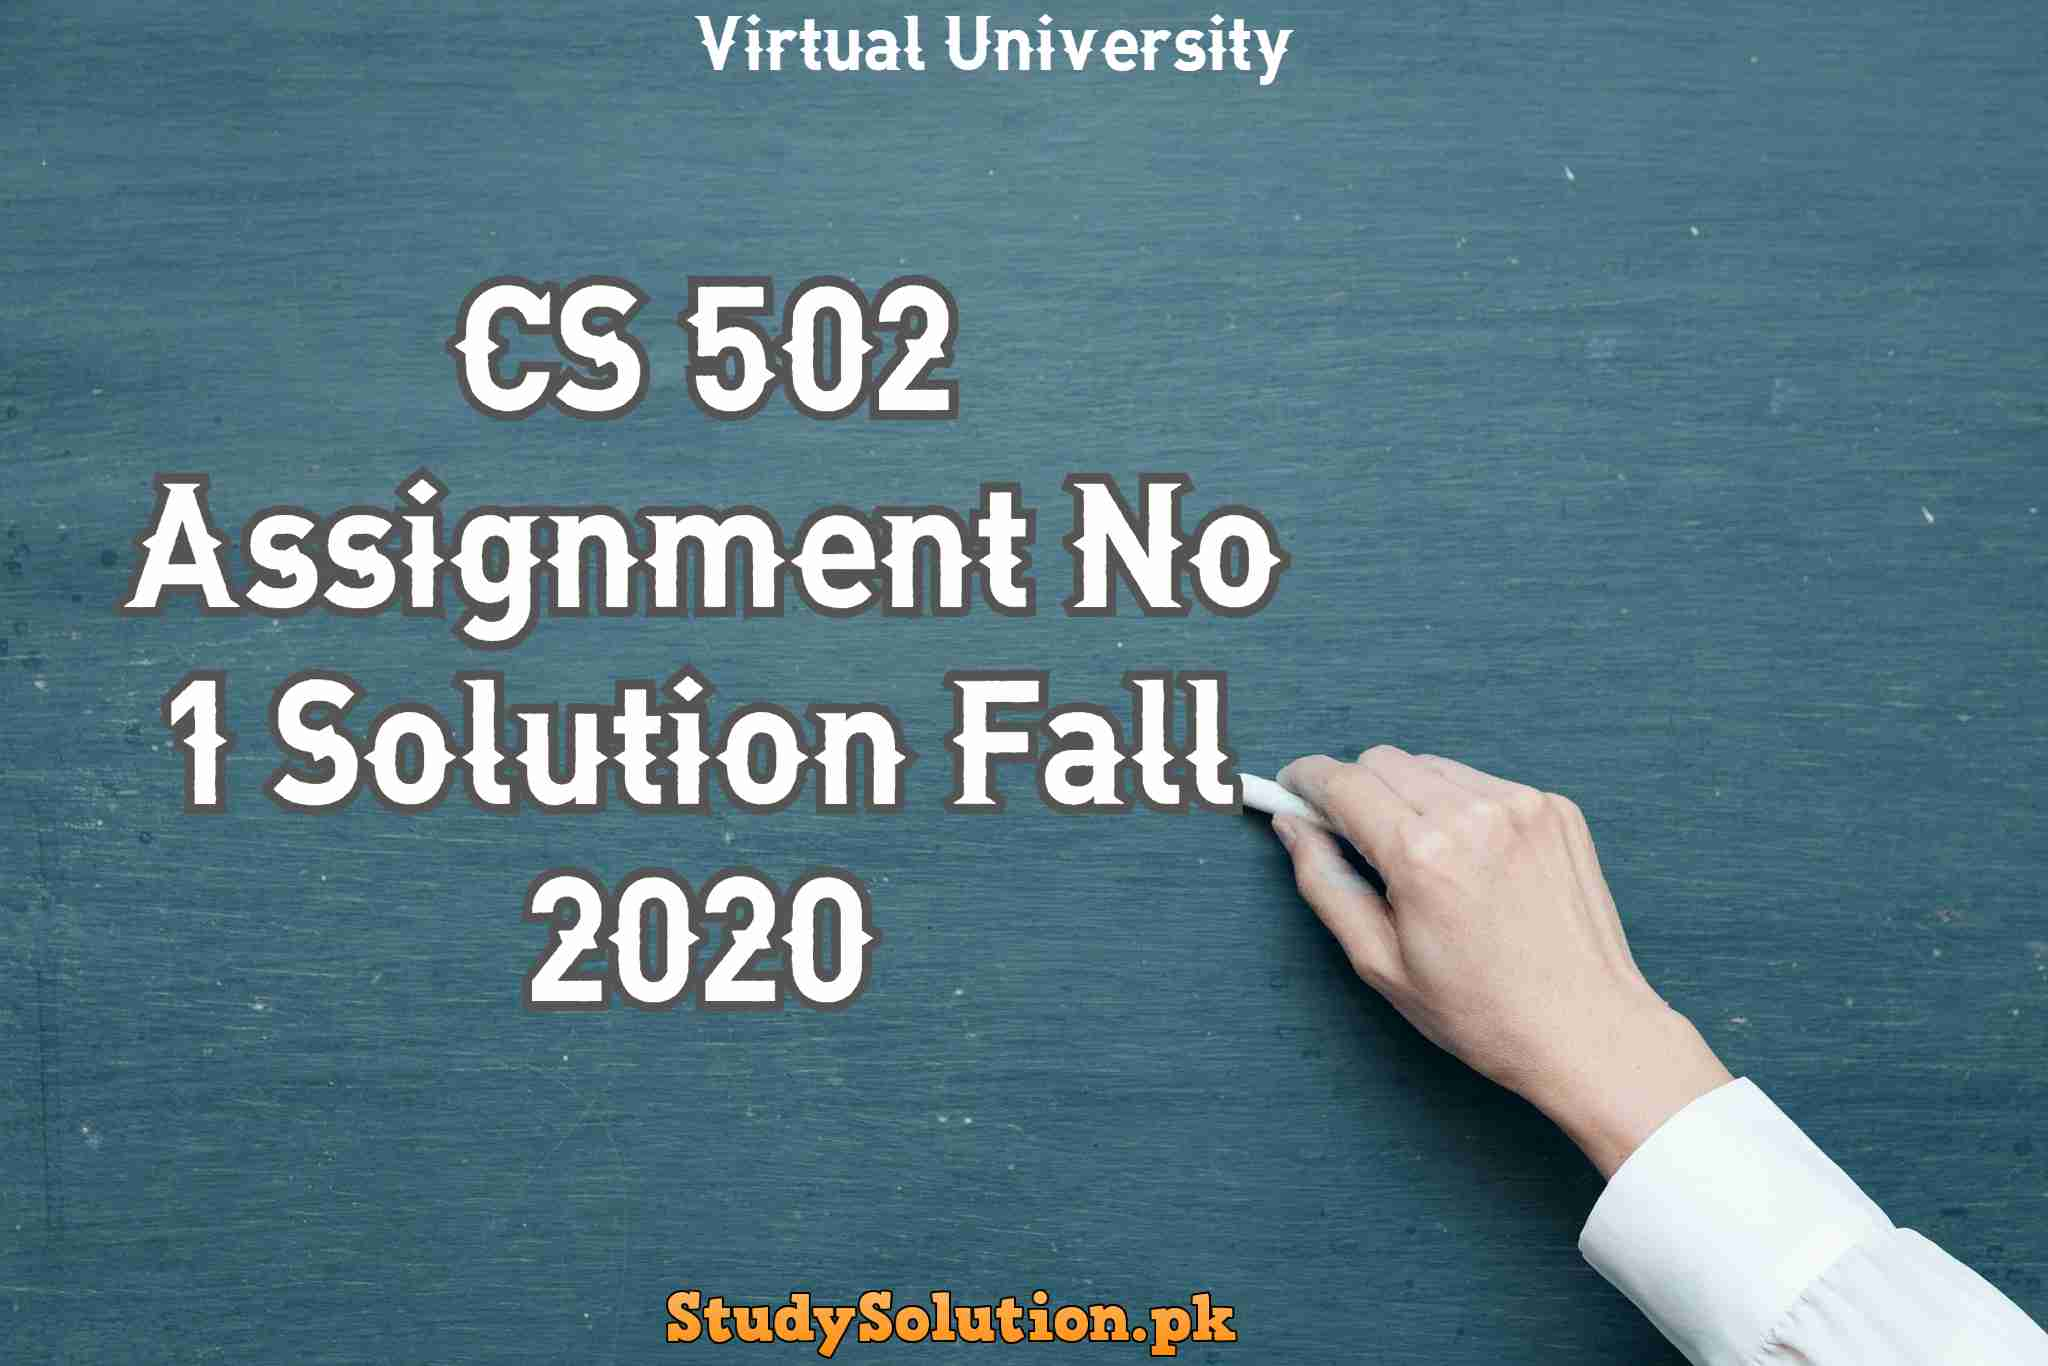 CS 502 Assignment No 1 Solution Fall 2020